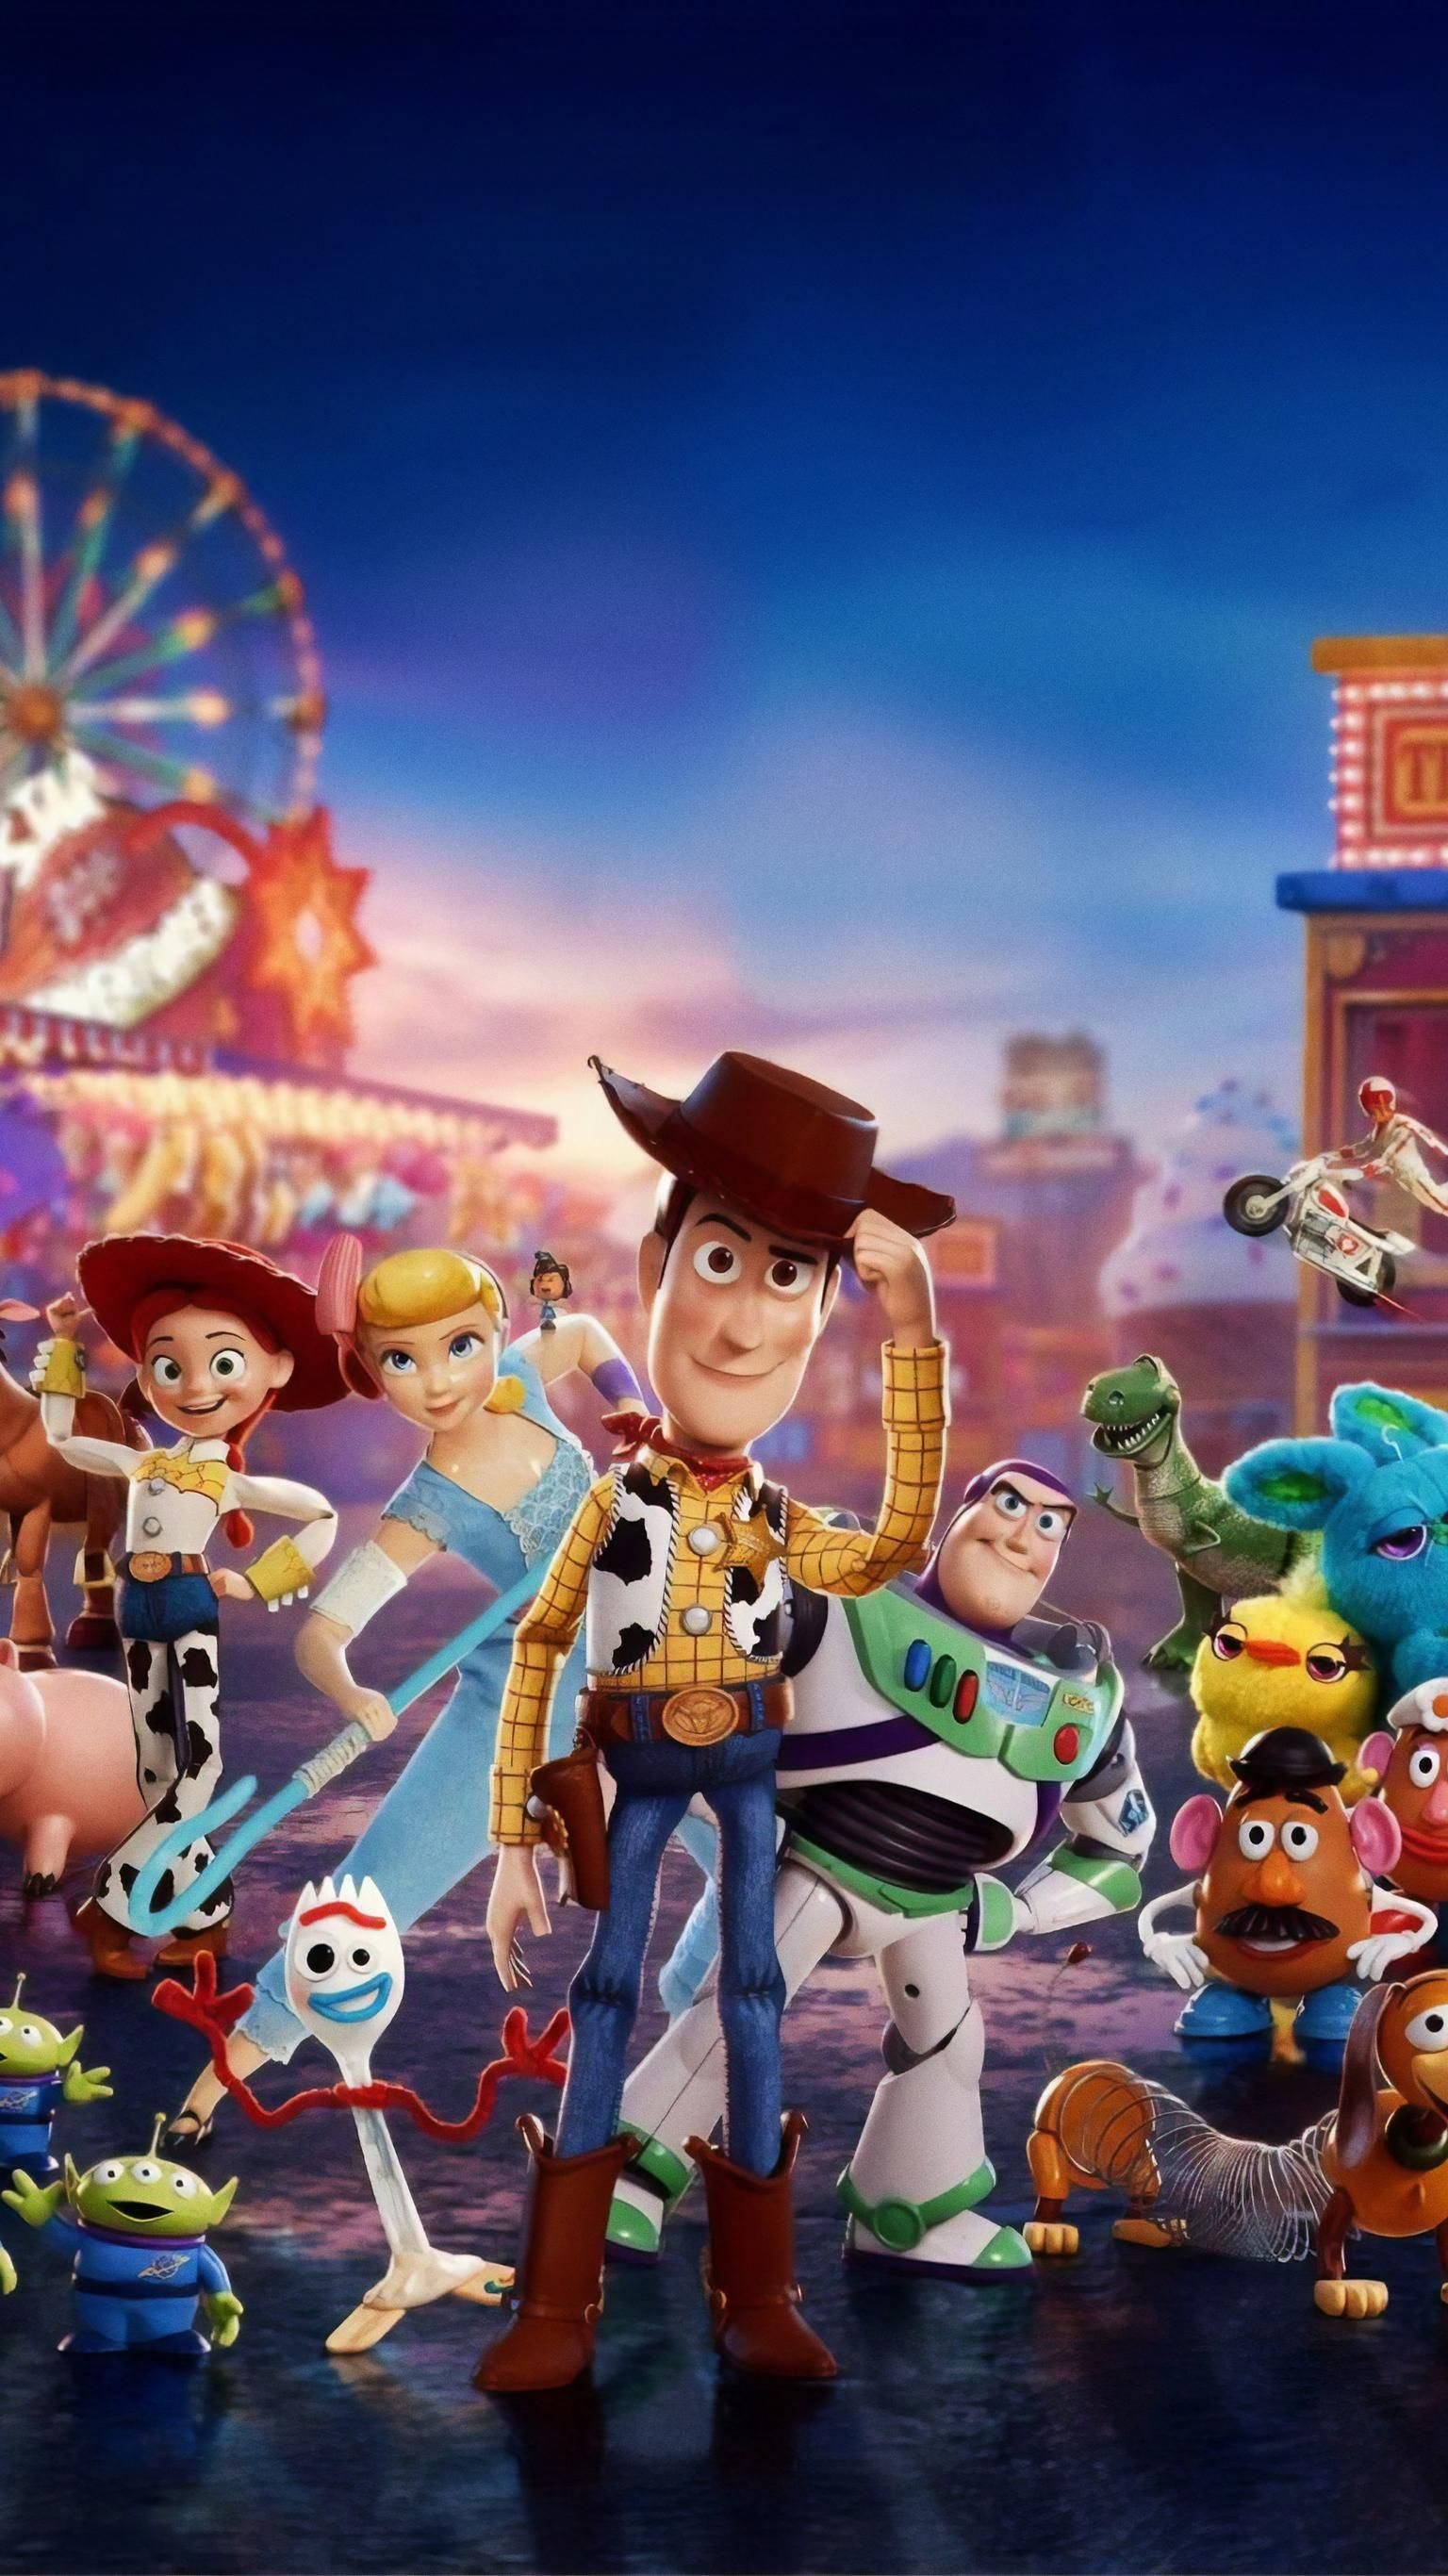 Moviemania Textless High Resolution Movie Wallpapers Toy Story Movie Disney Toys Cute Disney Wallpaper